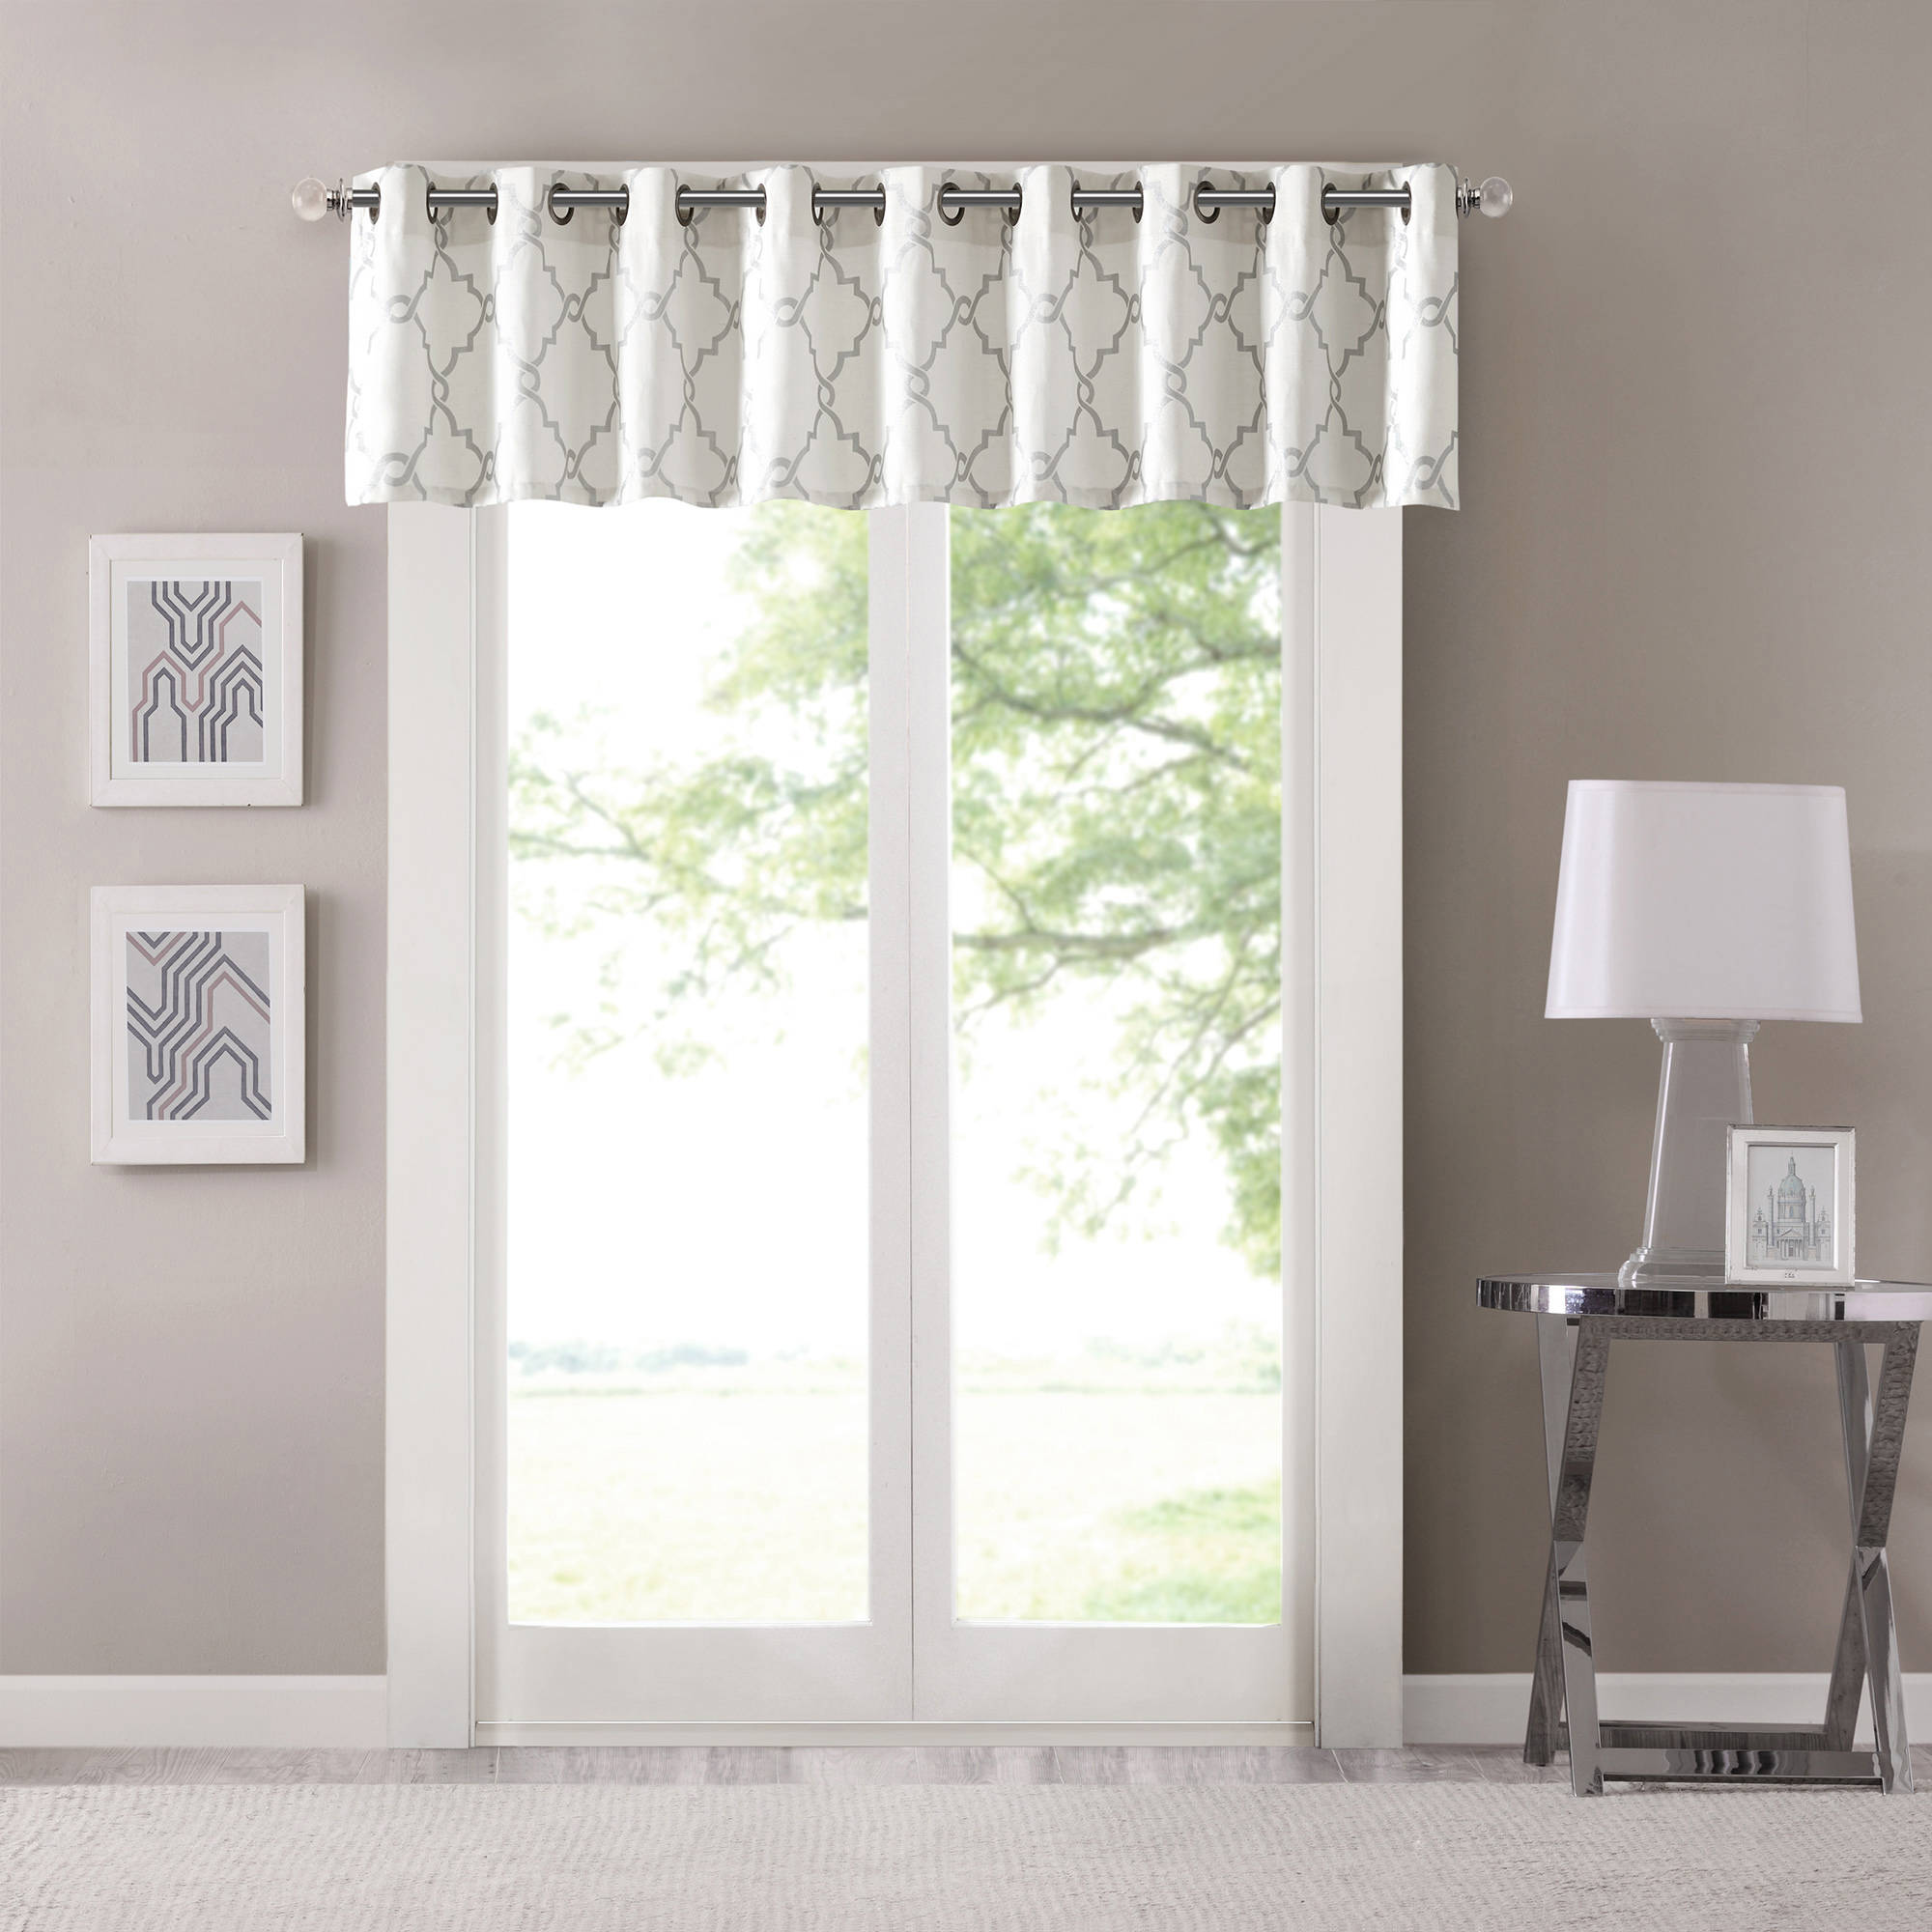 Home Essence Sereno Fretwork Print Valance